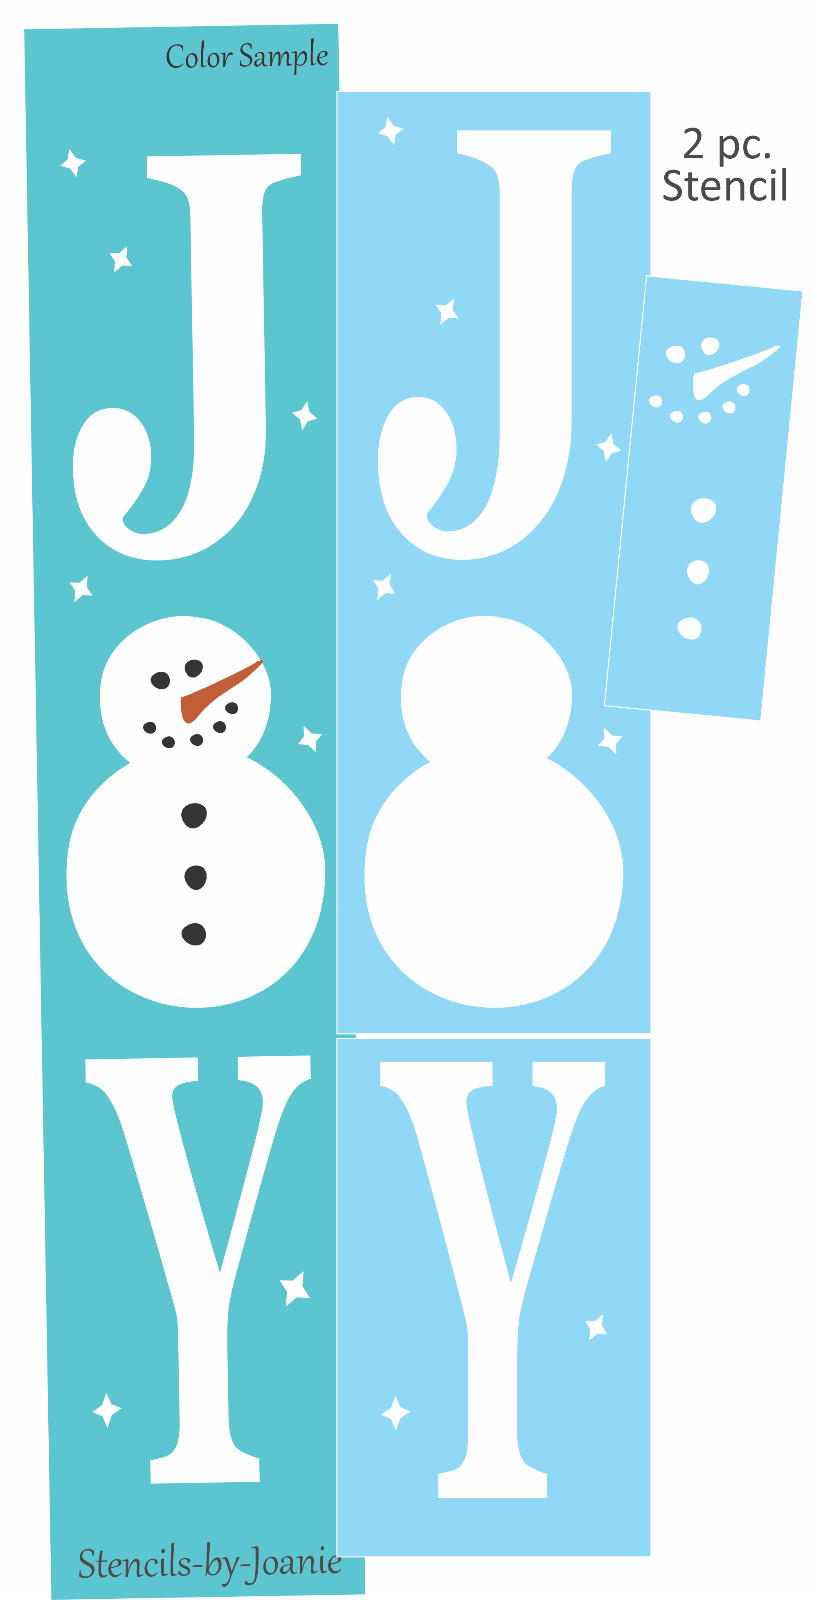 Details About Joanie 36 Stencil Vertical Joy Snowman Snowflake Star Winter Porch Cabin Signs Cabin Signs Hobby Lobby Wall Art Stencils